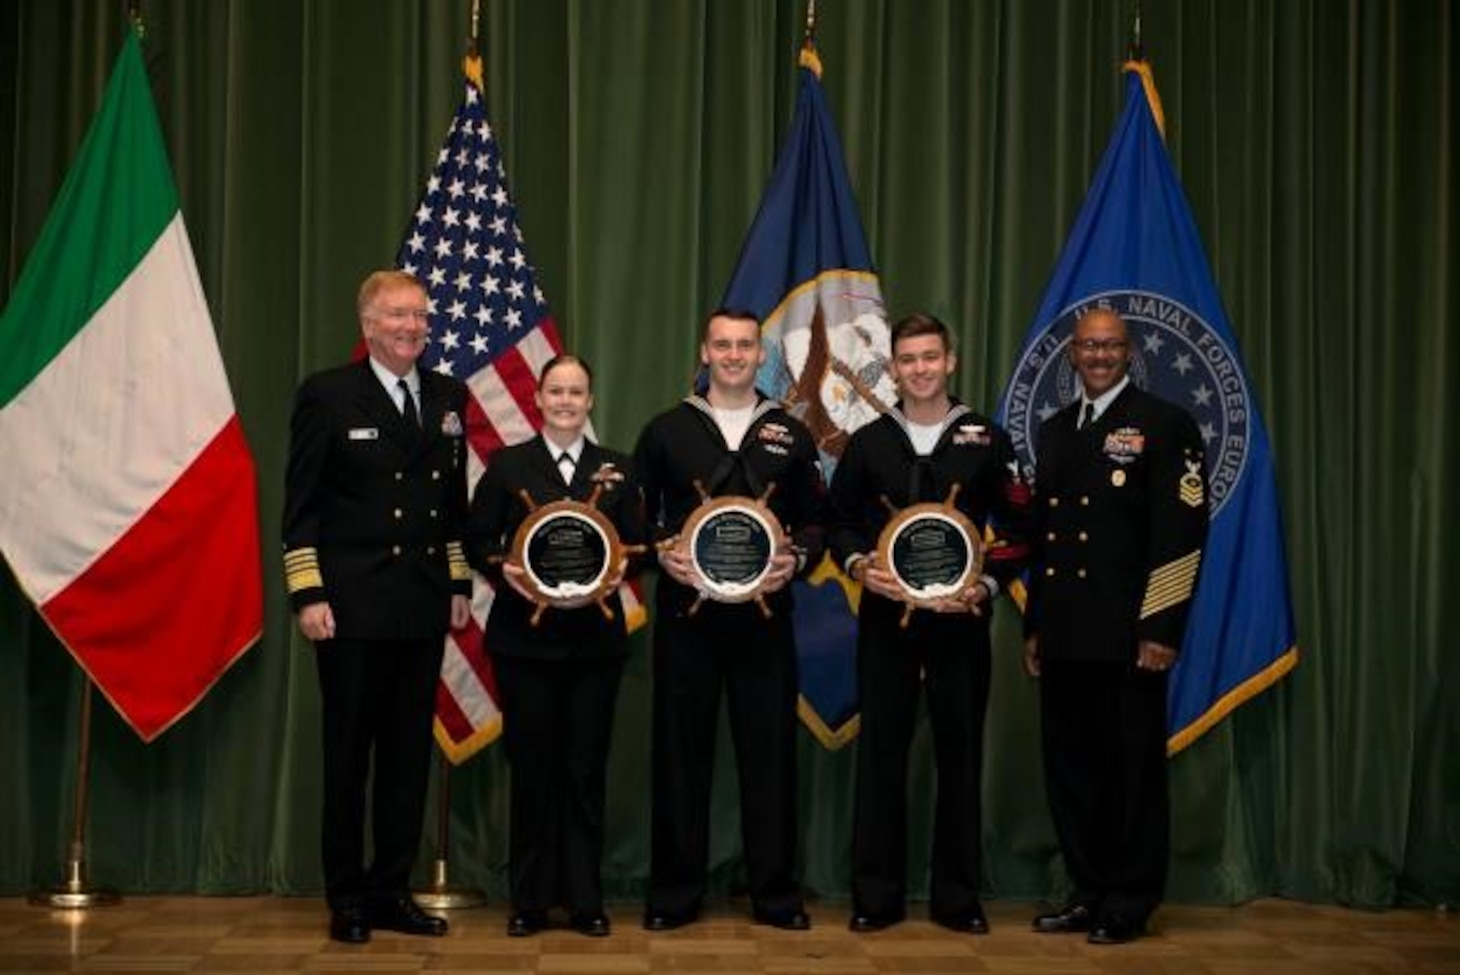 U.S. Naval Forces Europe-Africa Names Sailor of the Year